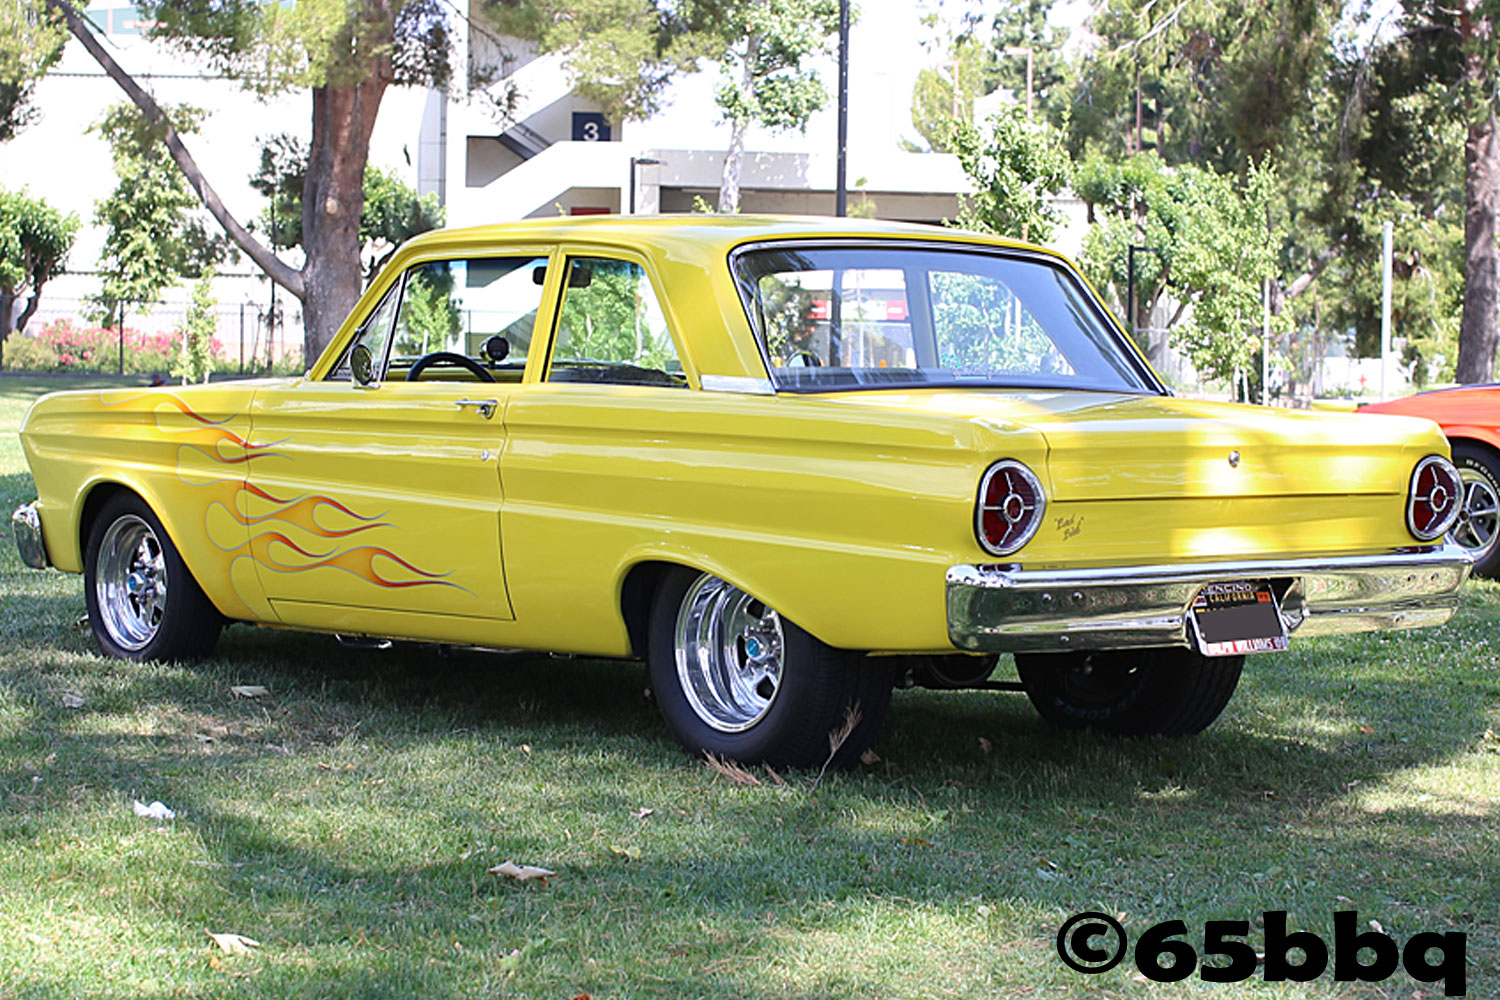 Ford Falcon Collection 65bbq